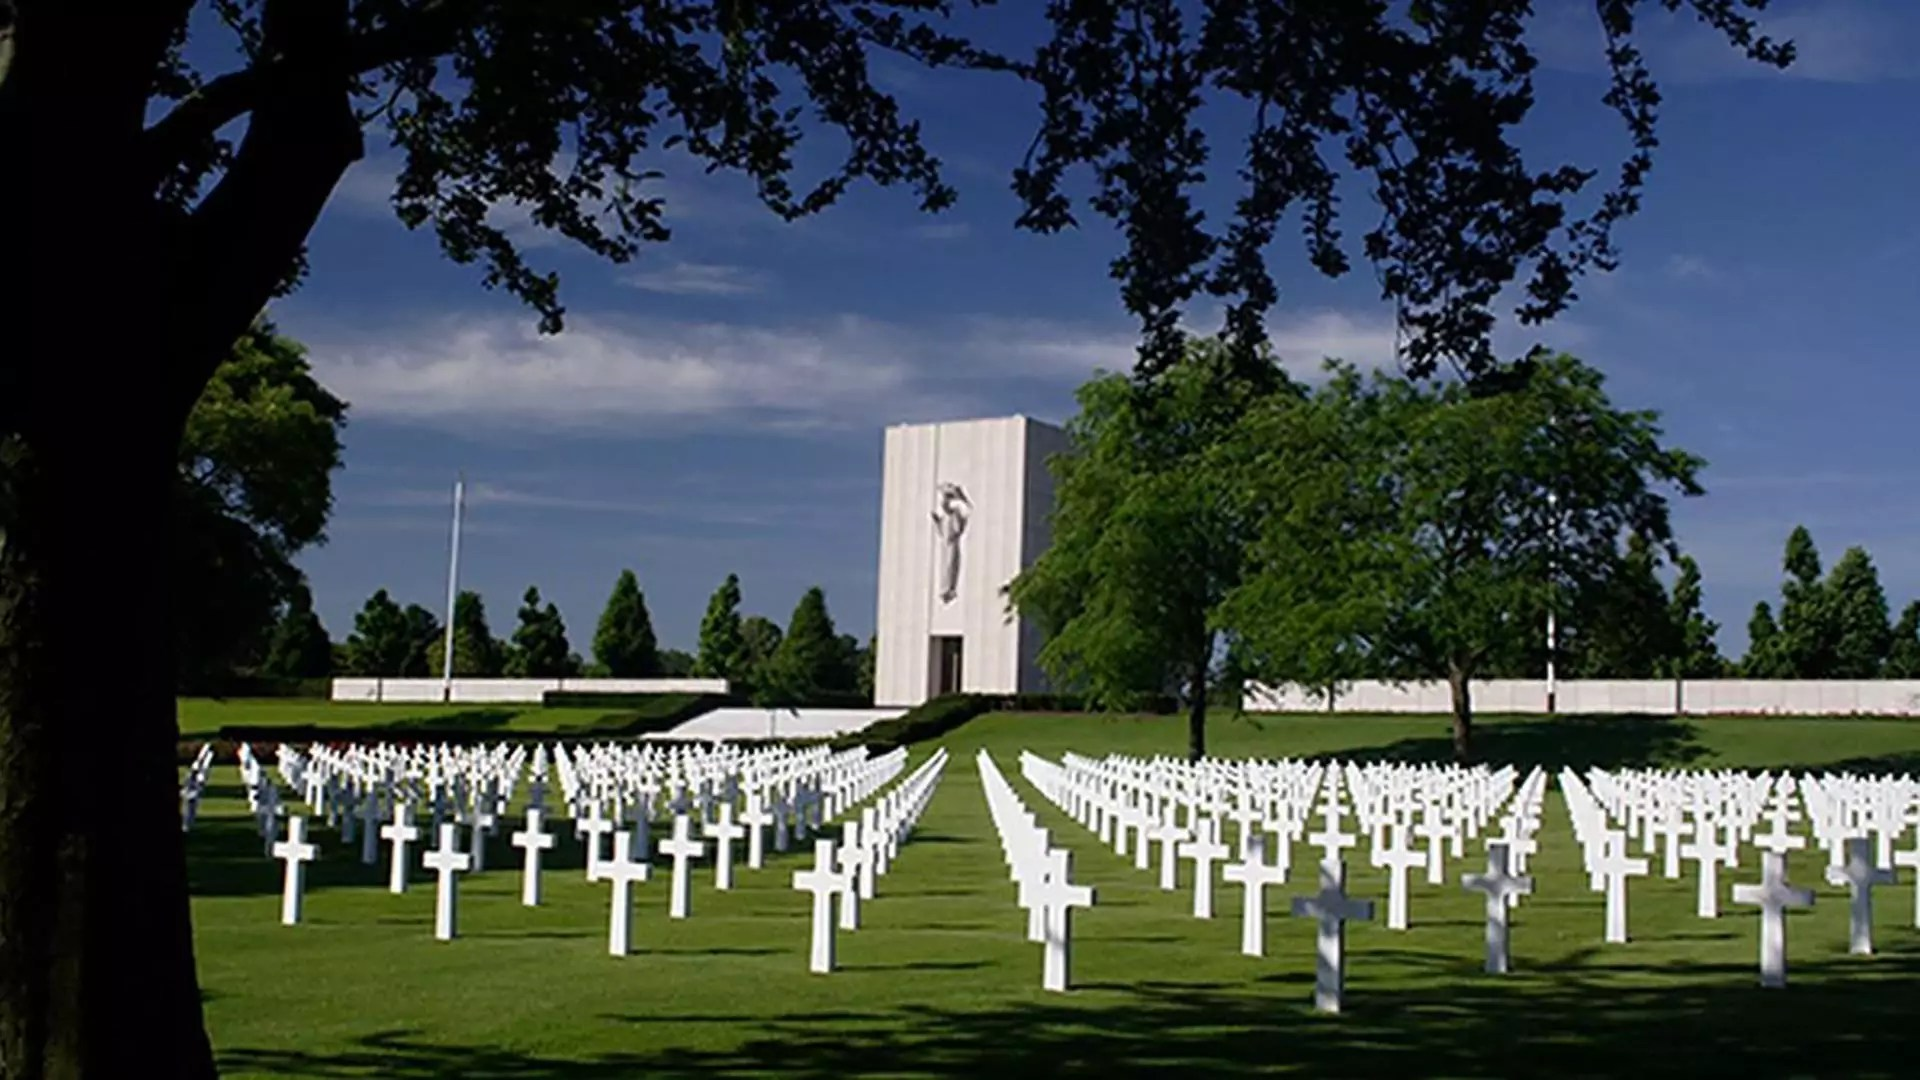 A military graveyard featuring dozens of white crosses.